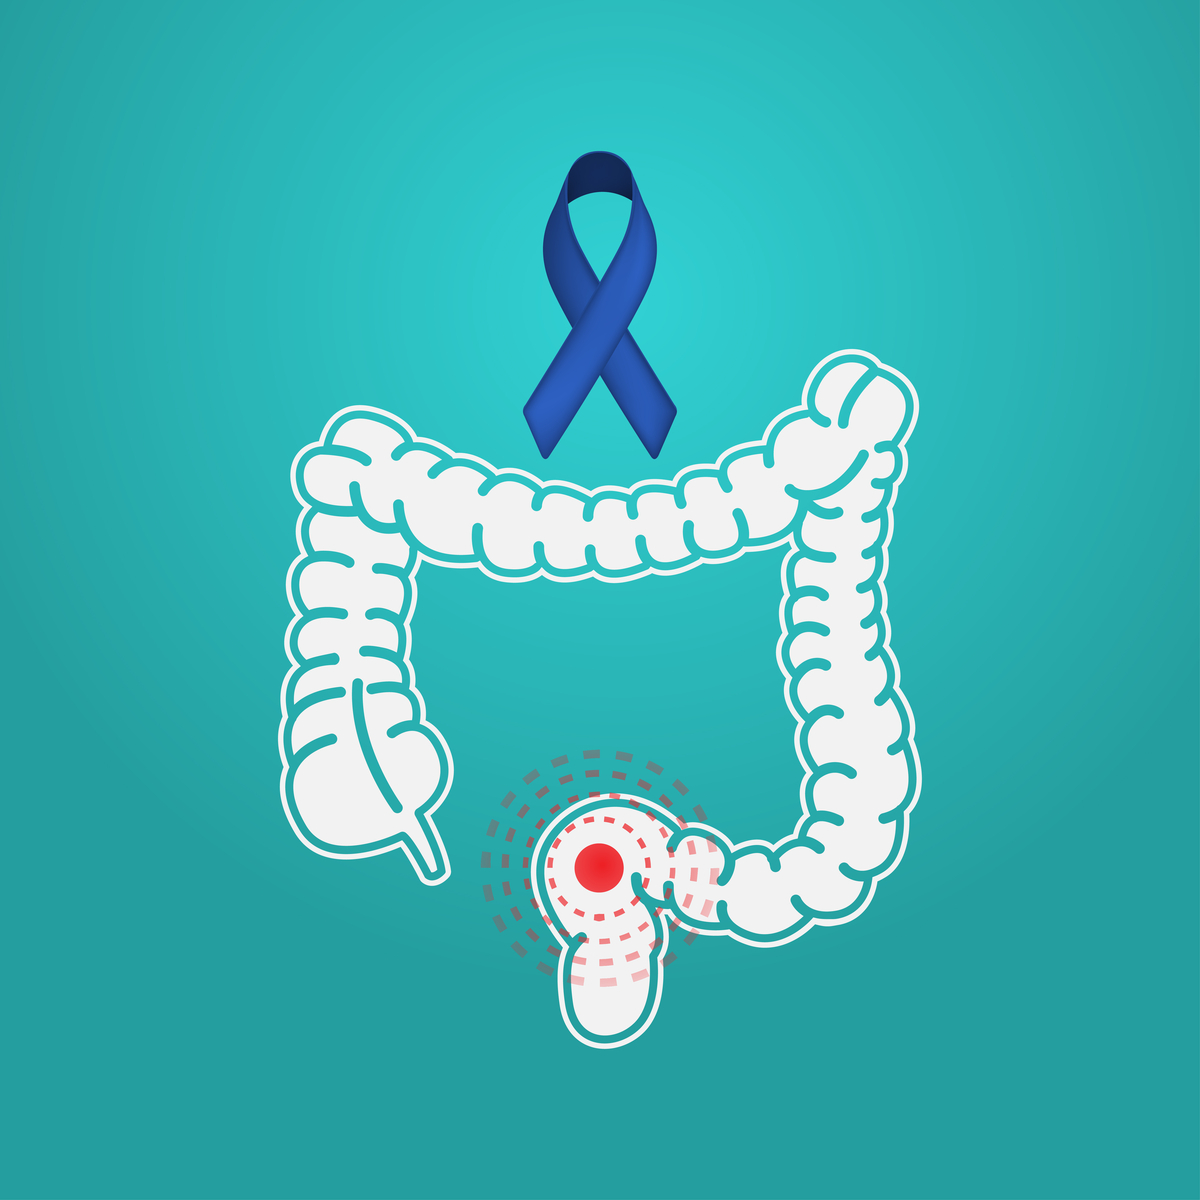 age for colon cancer screening